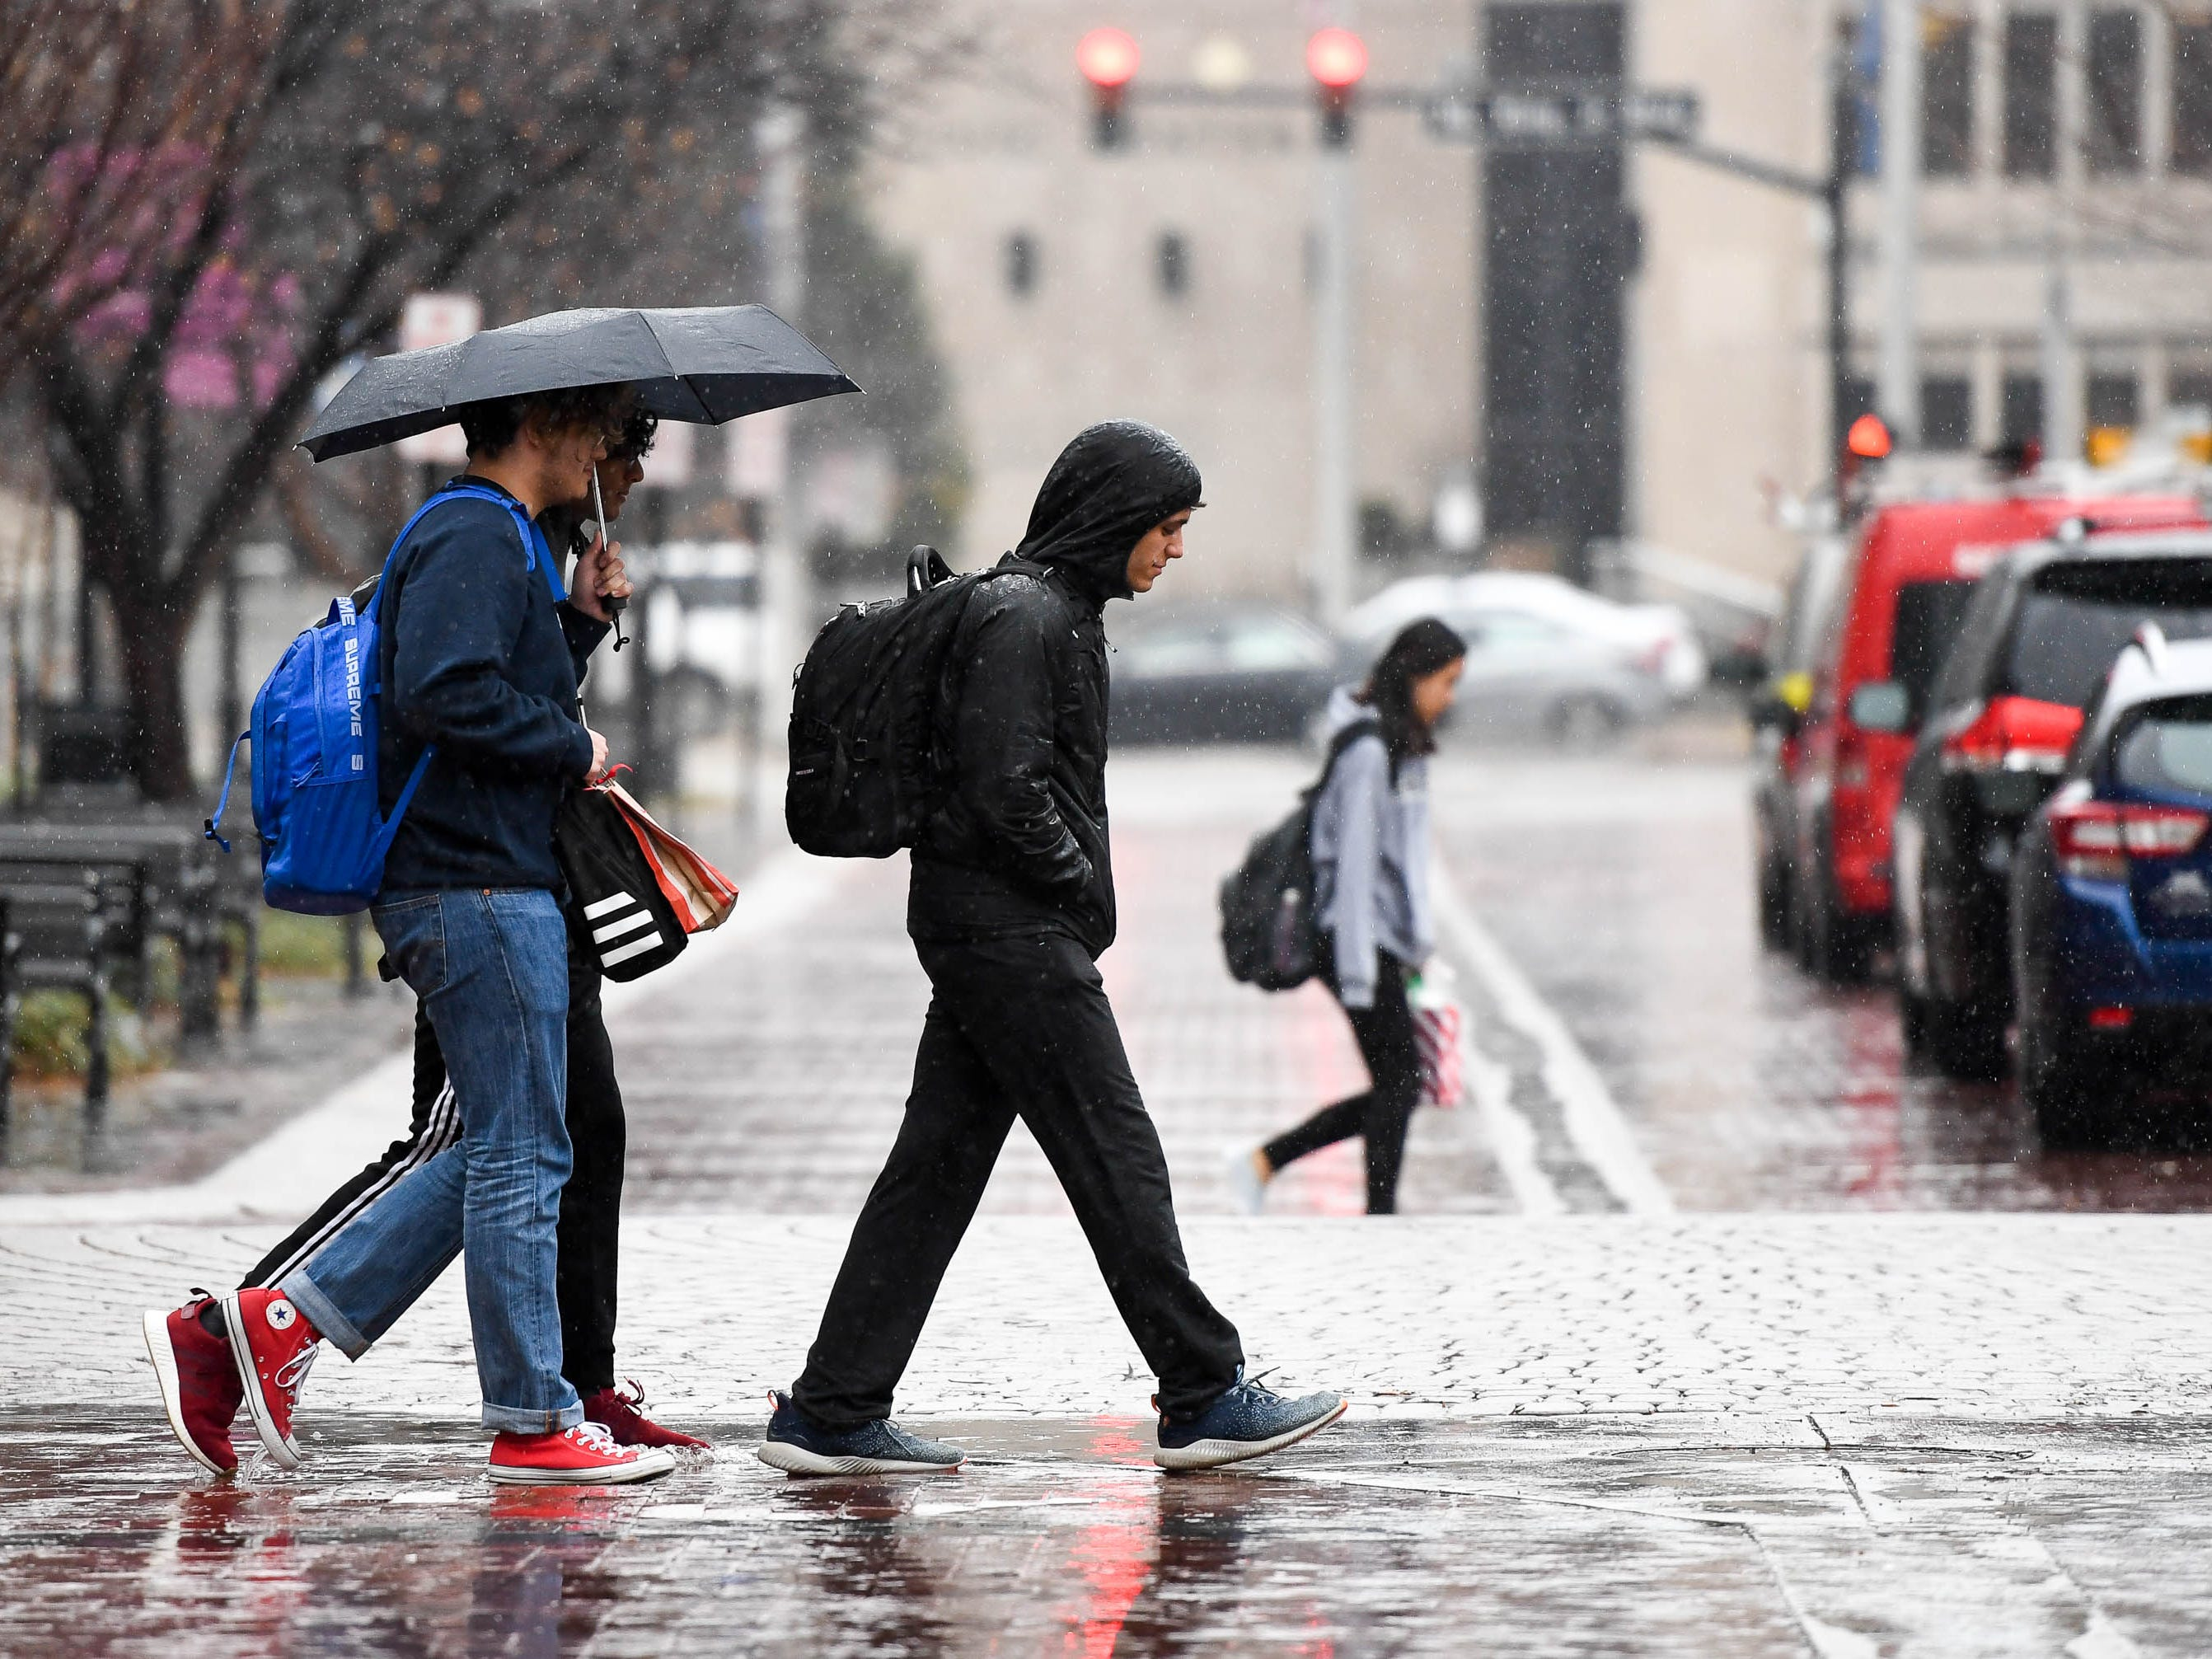 Moving between classes, Signature School students cross Main Street in the rain as showers move through the Evansville area Thursday, December 13, 2018.